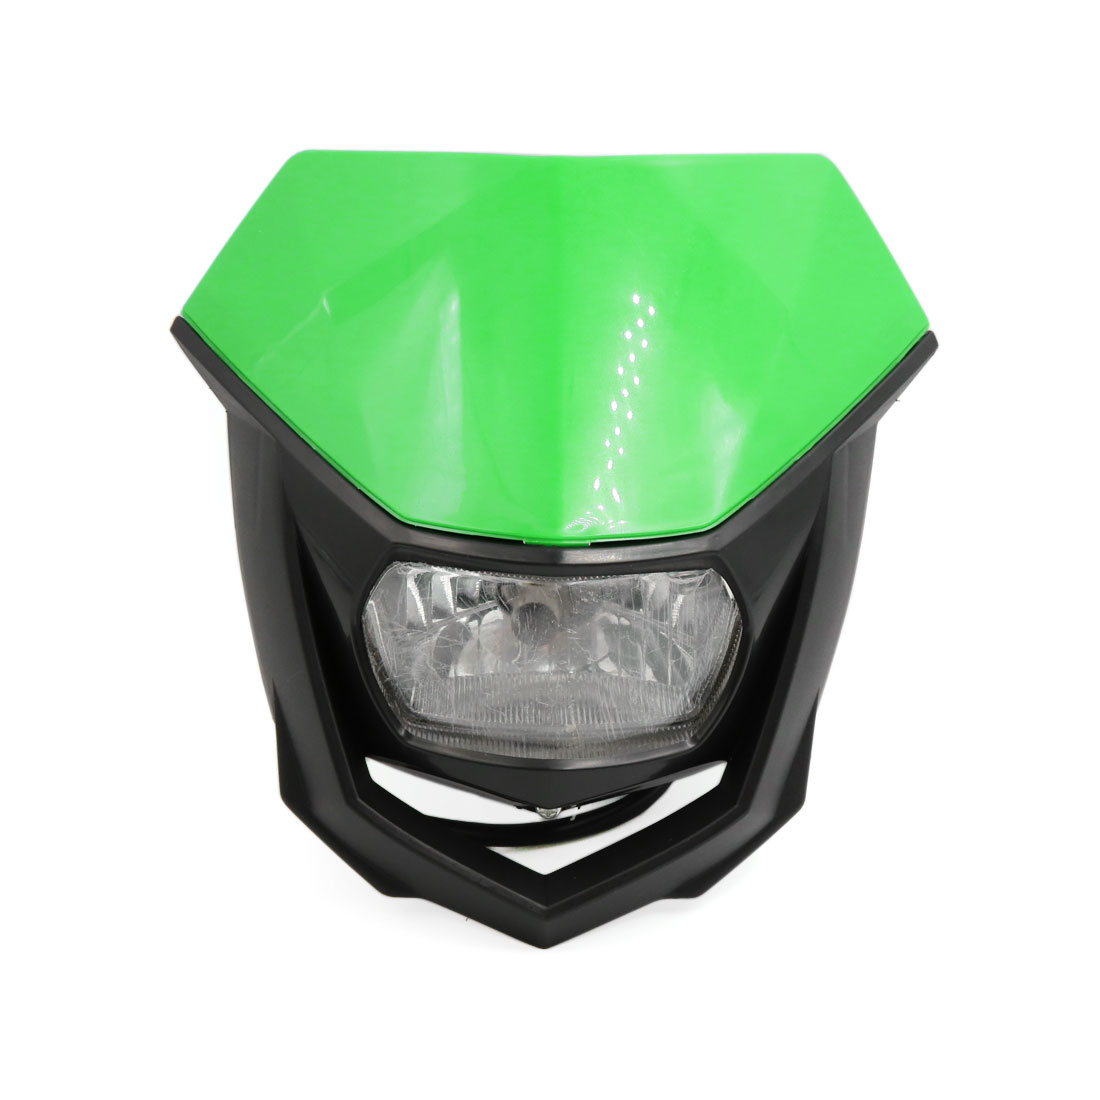 Black Green Shell Motorcycle Streetfighter Headlight Fairing Lamp Light Yellow